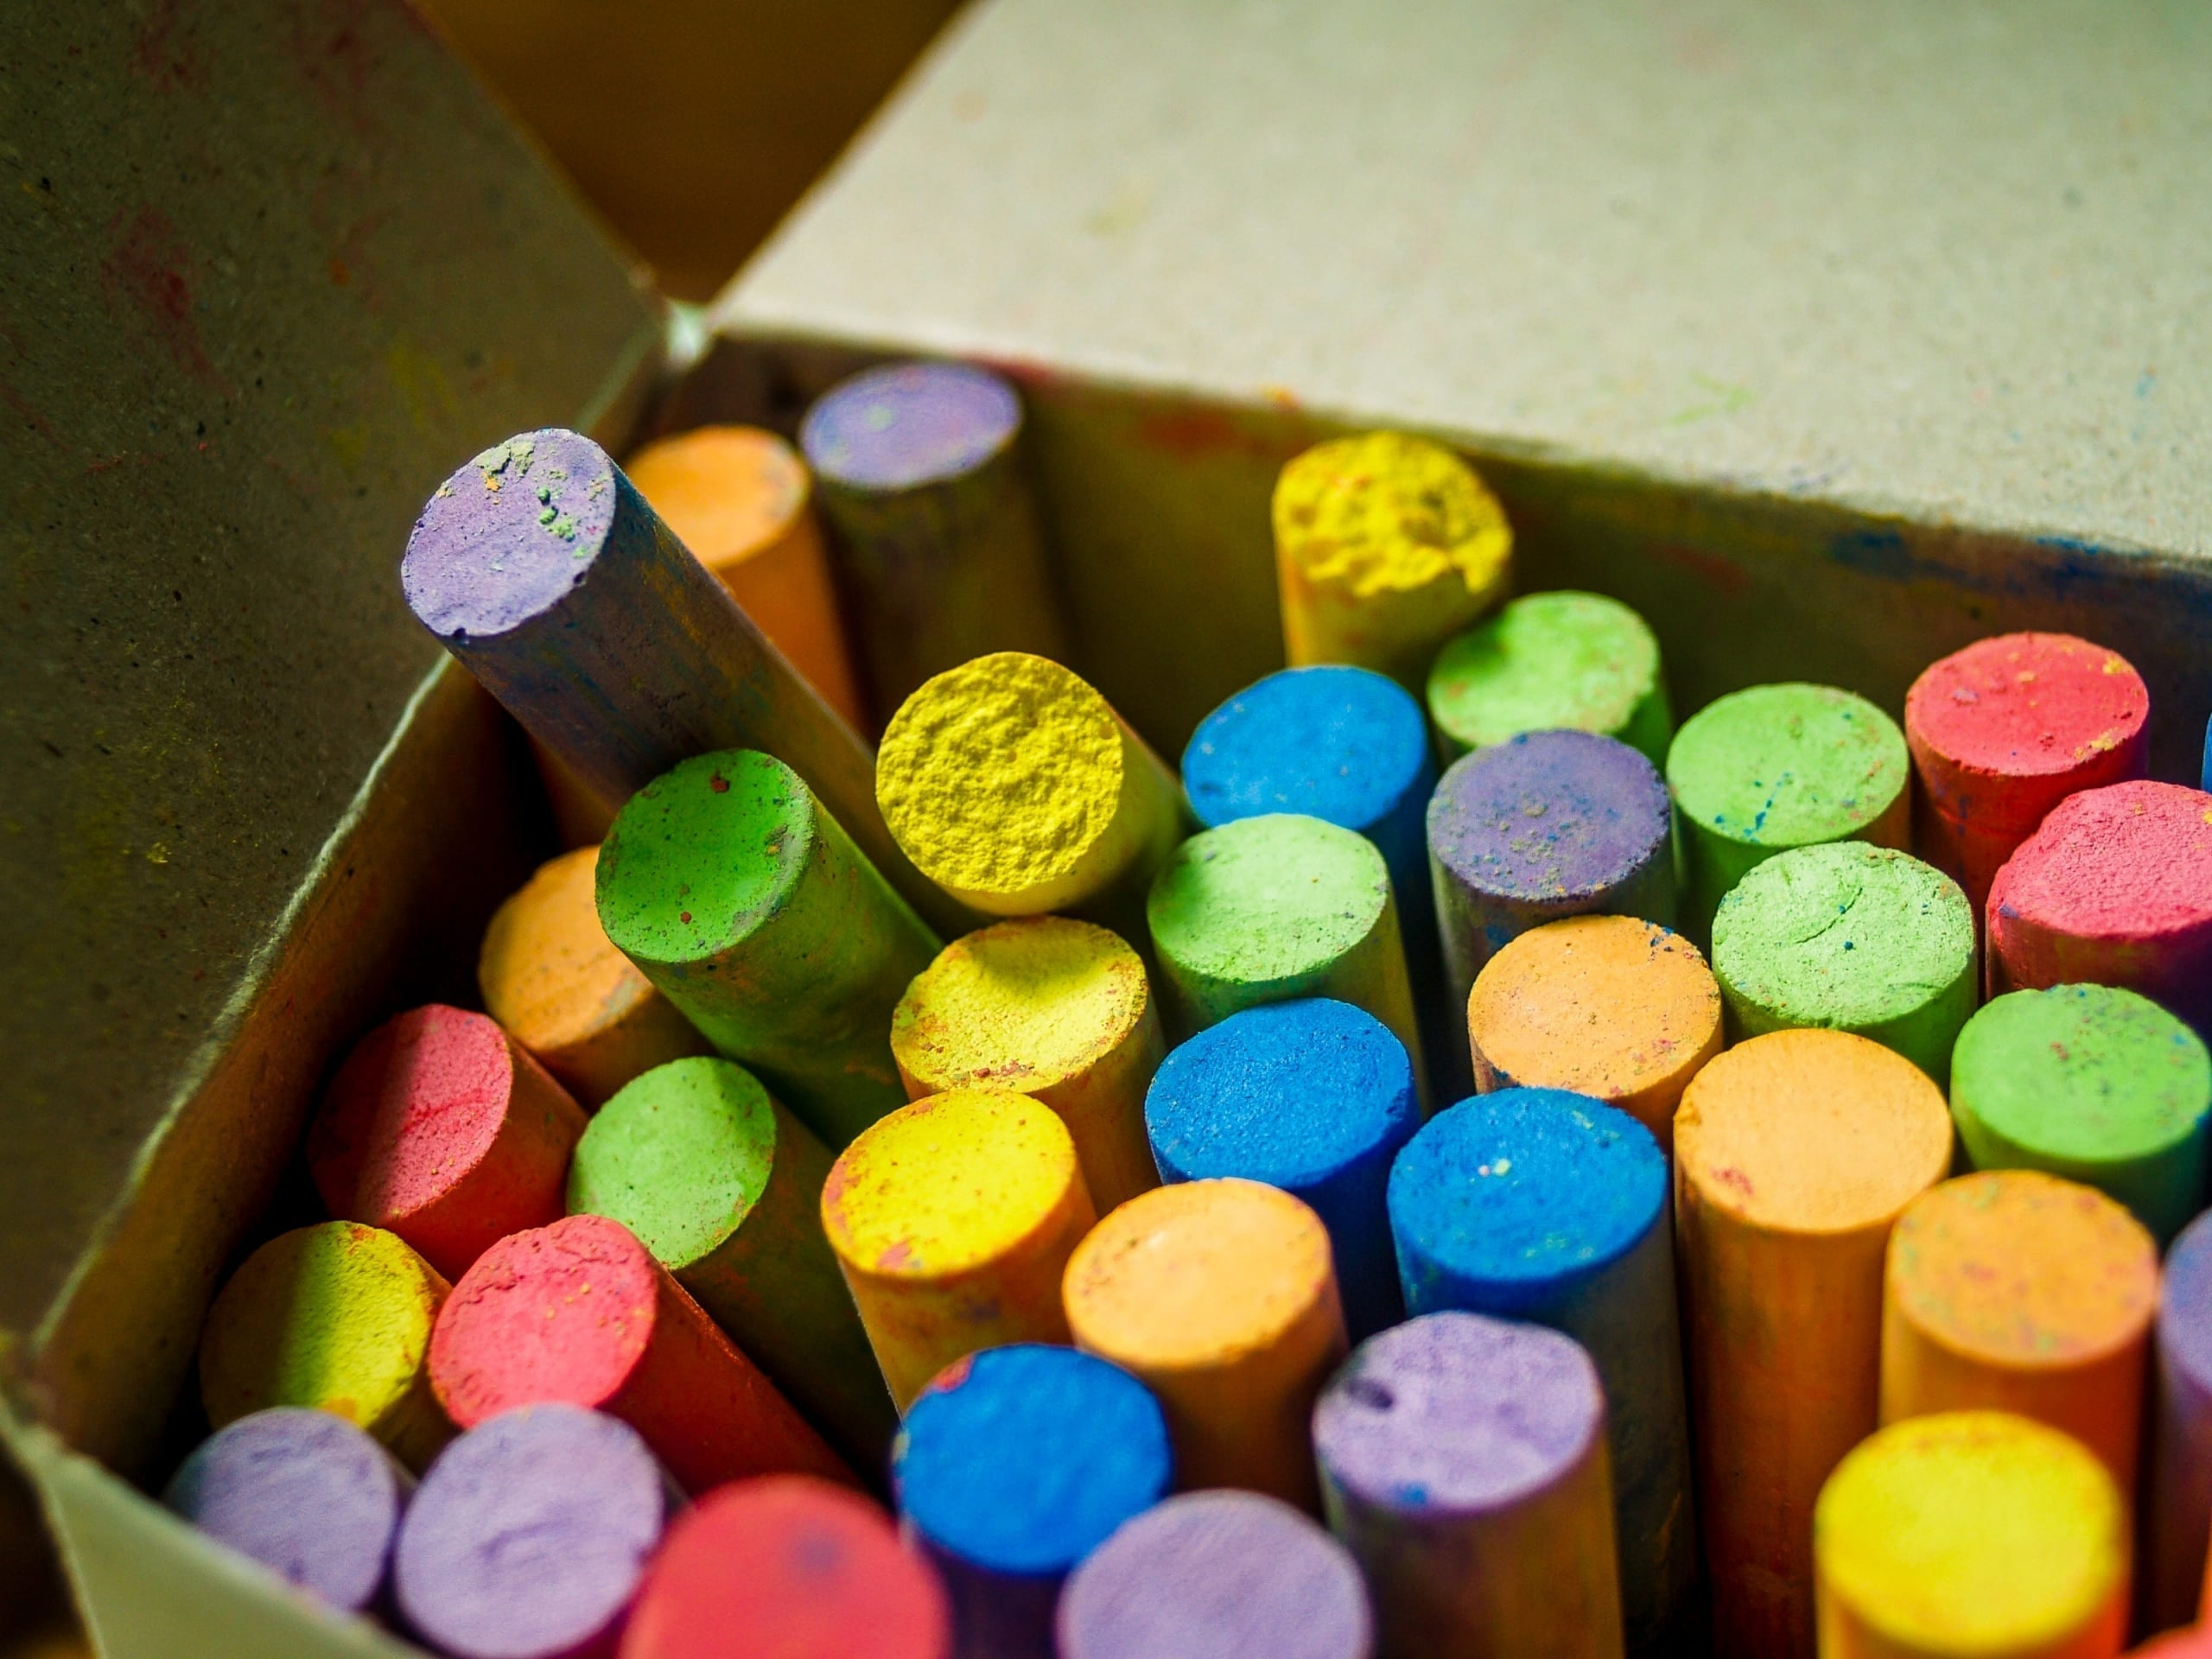 colourful chalks created in chalk making business